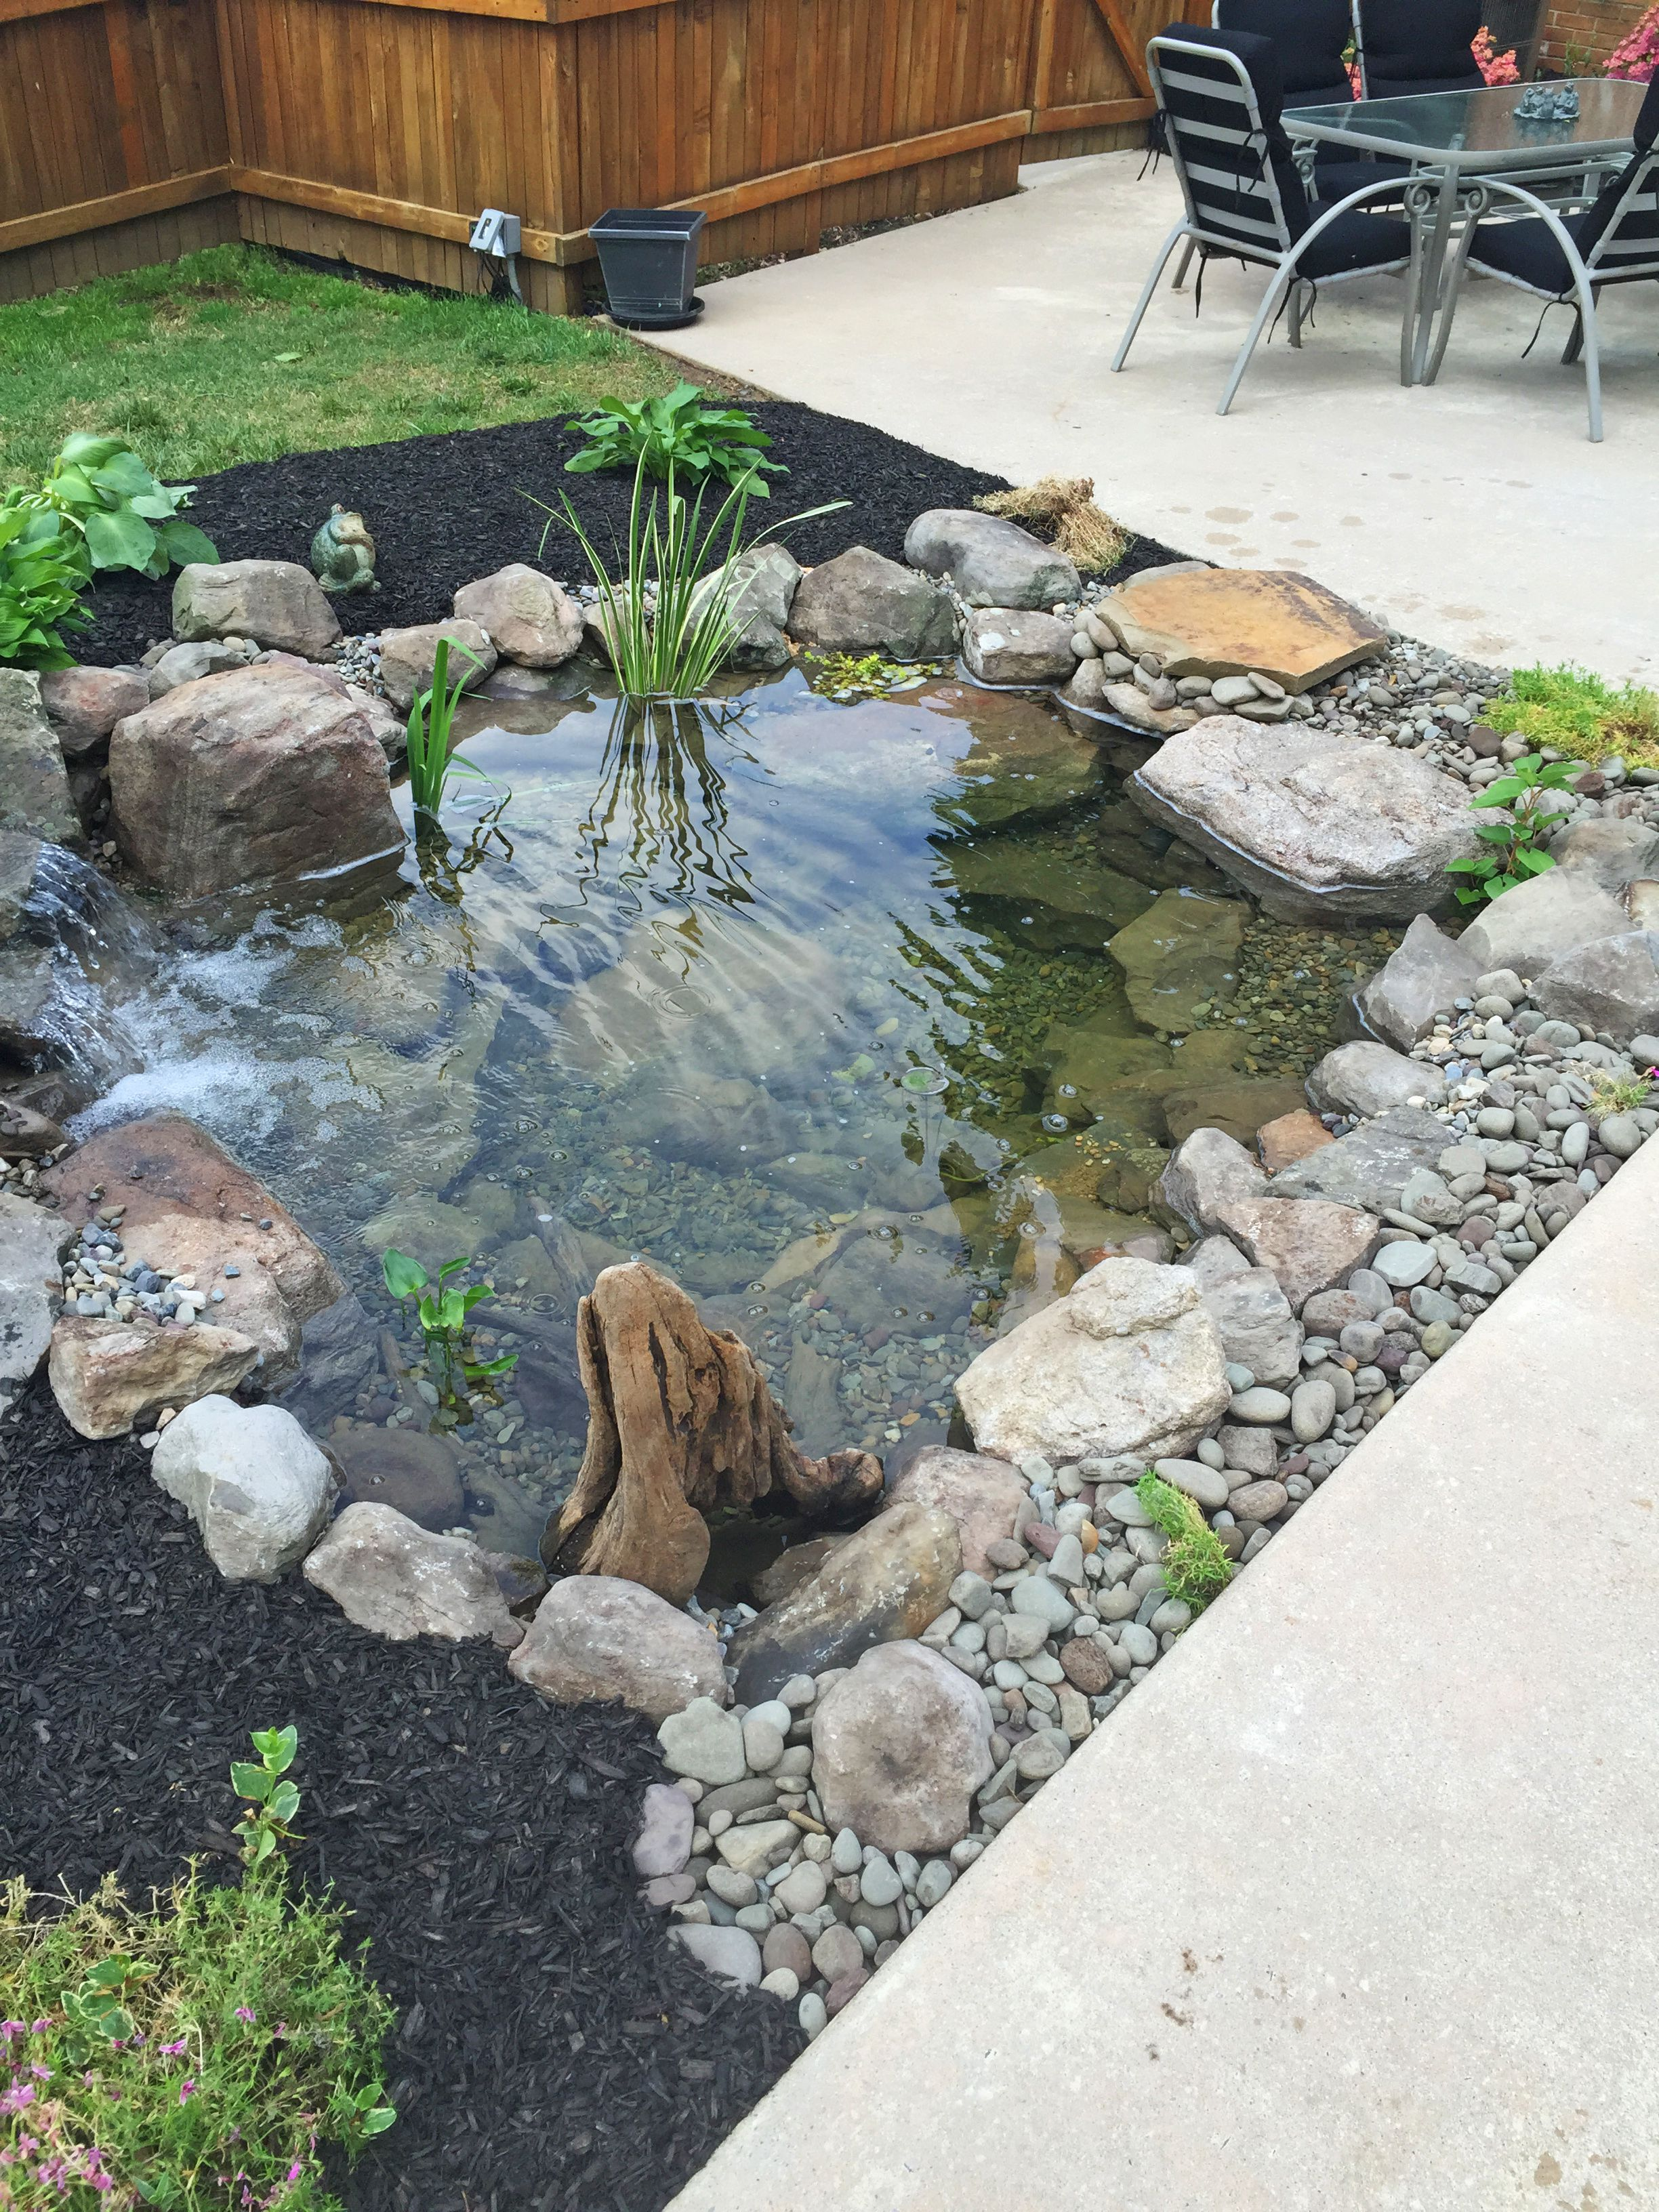 Backyard fish pond waterfall koi water garden waterscapes for How to design a pond